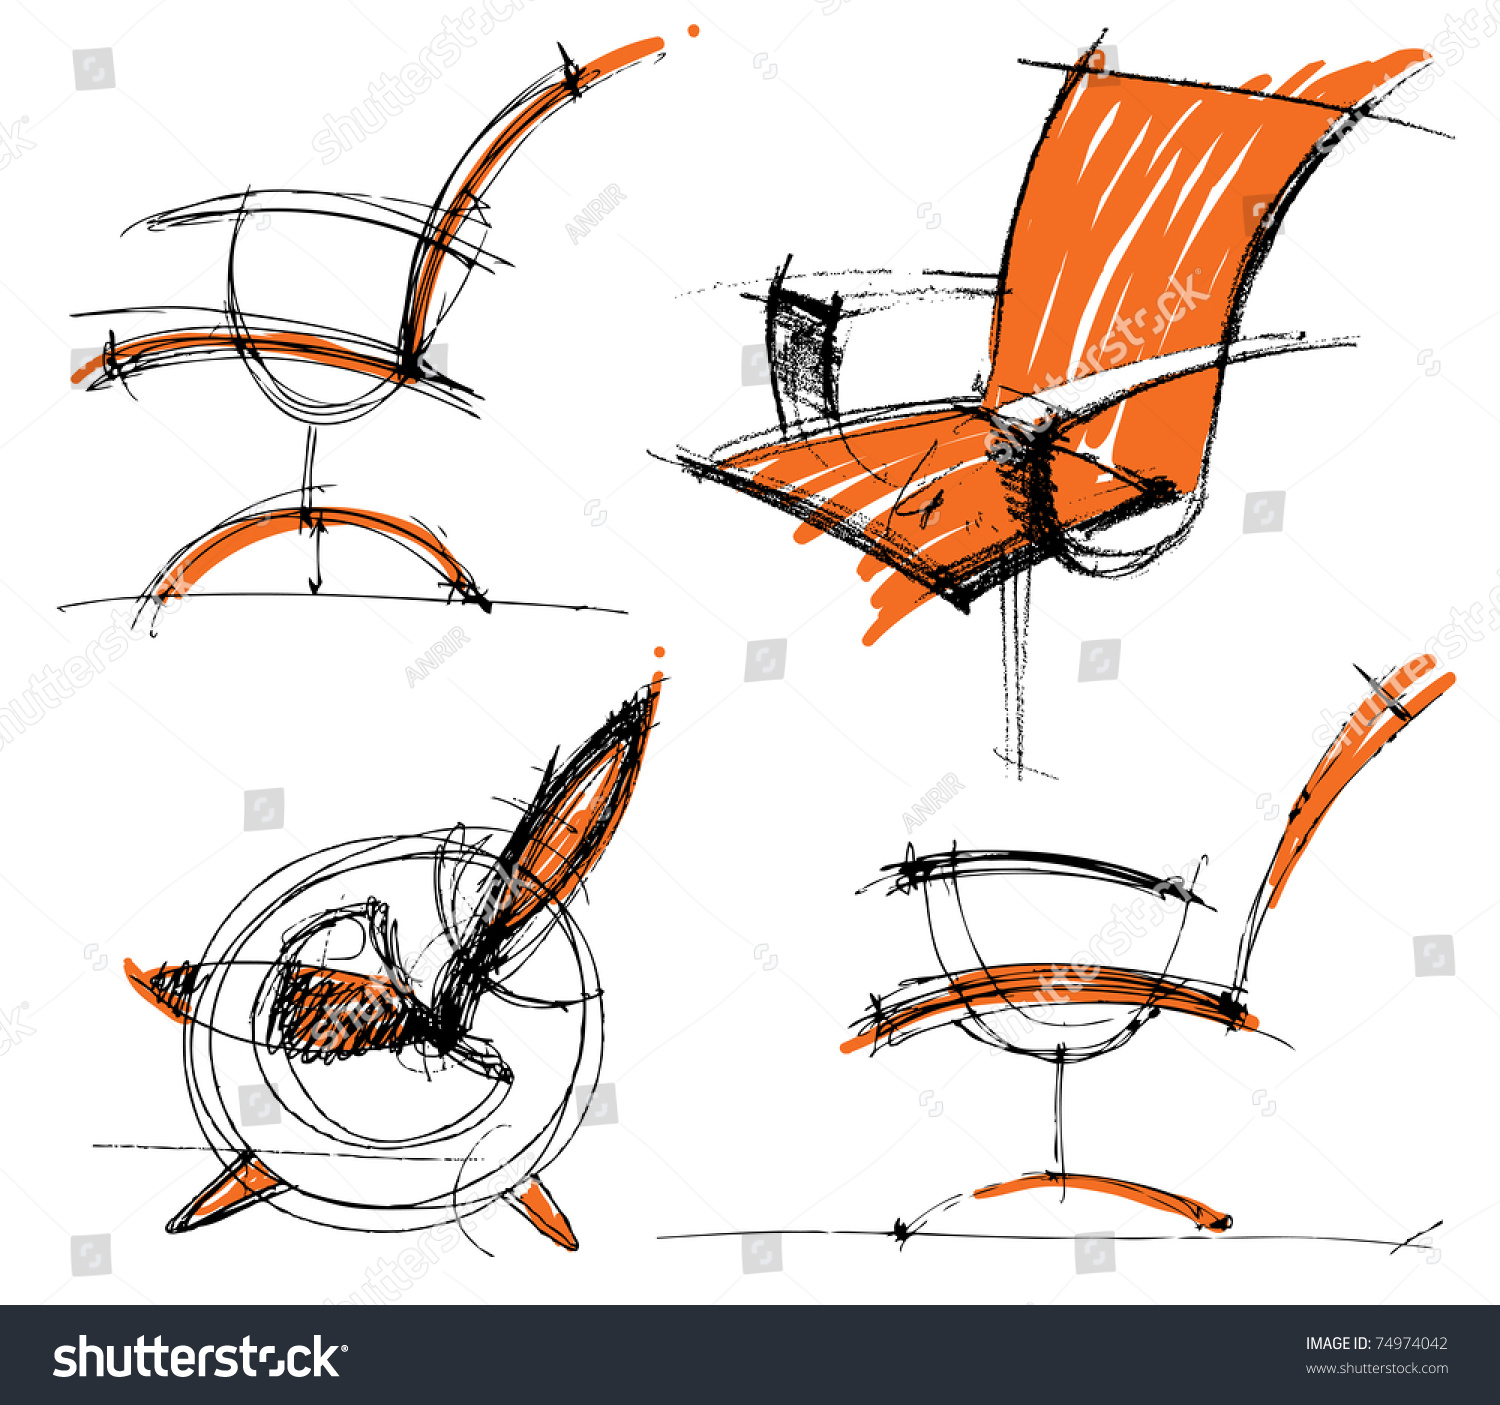 Furniture Sketches Sketches Furniture Stock Vector 74974042 Shutterstock